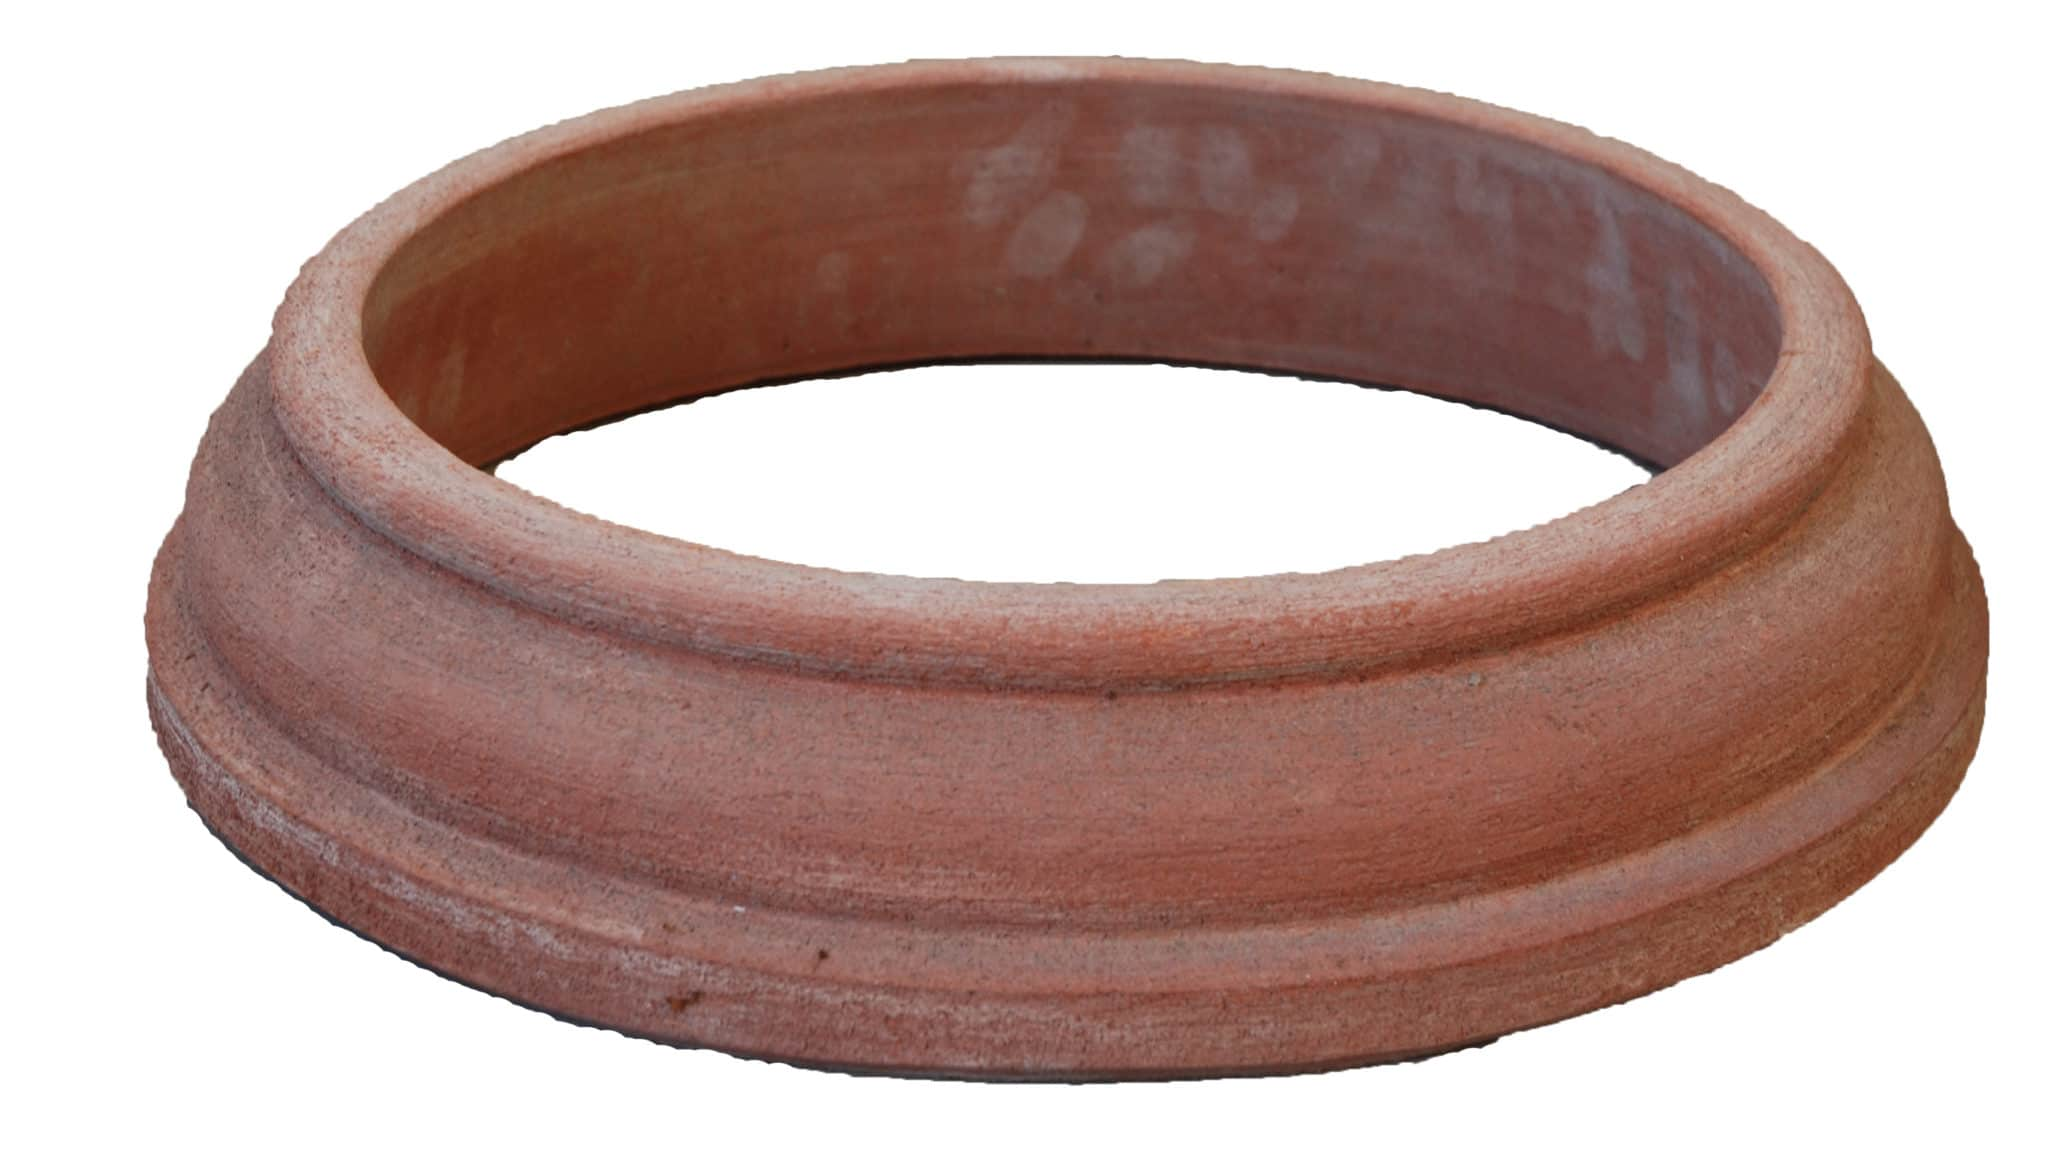 Italian Terracotta Ciotola Pot Base